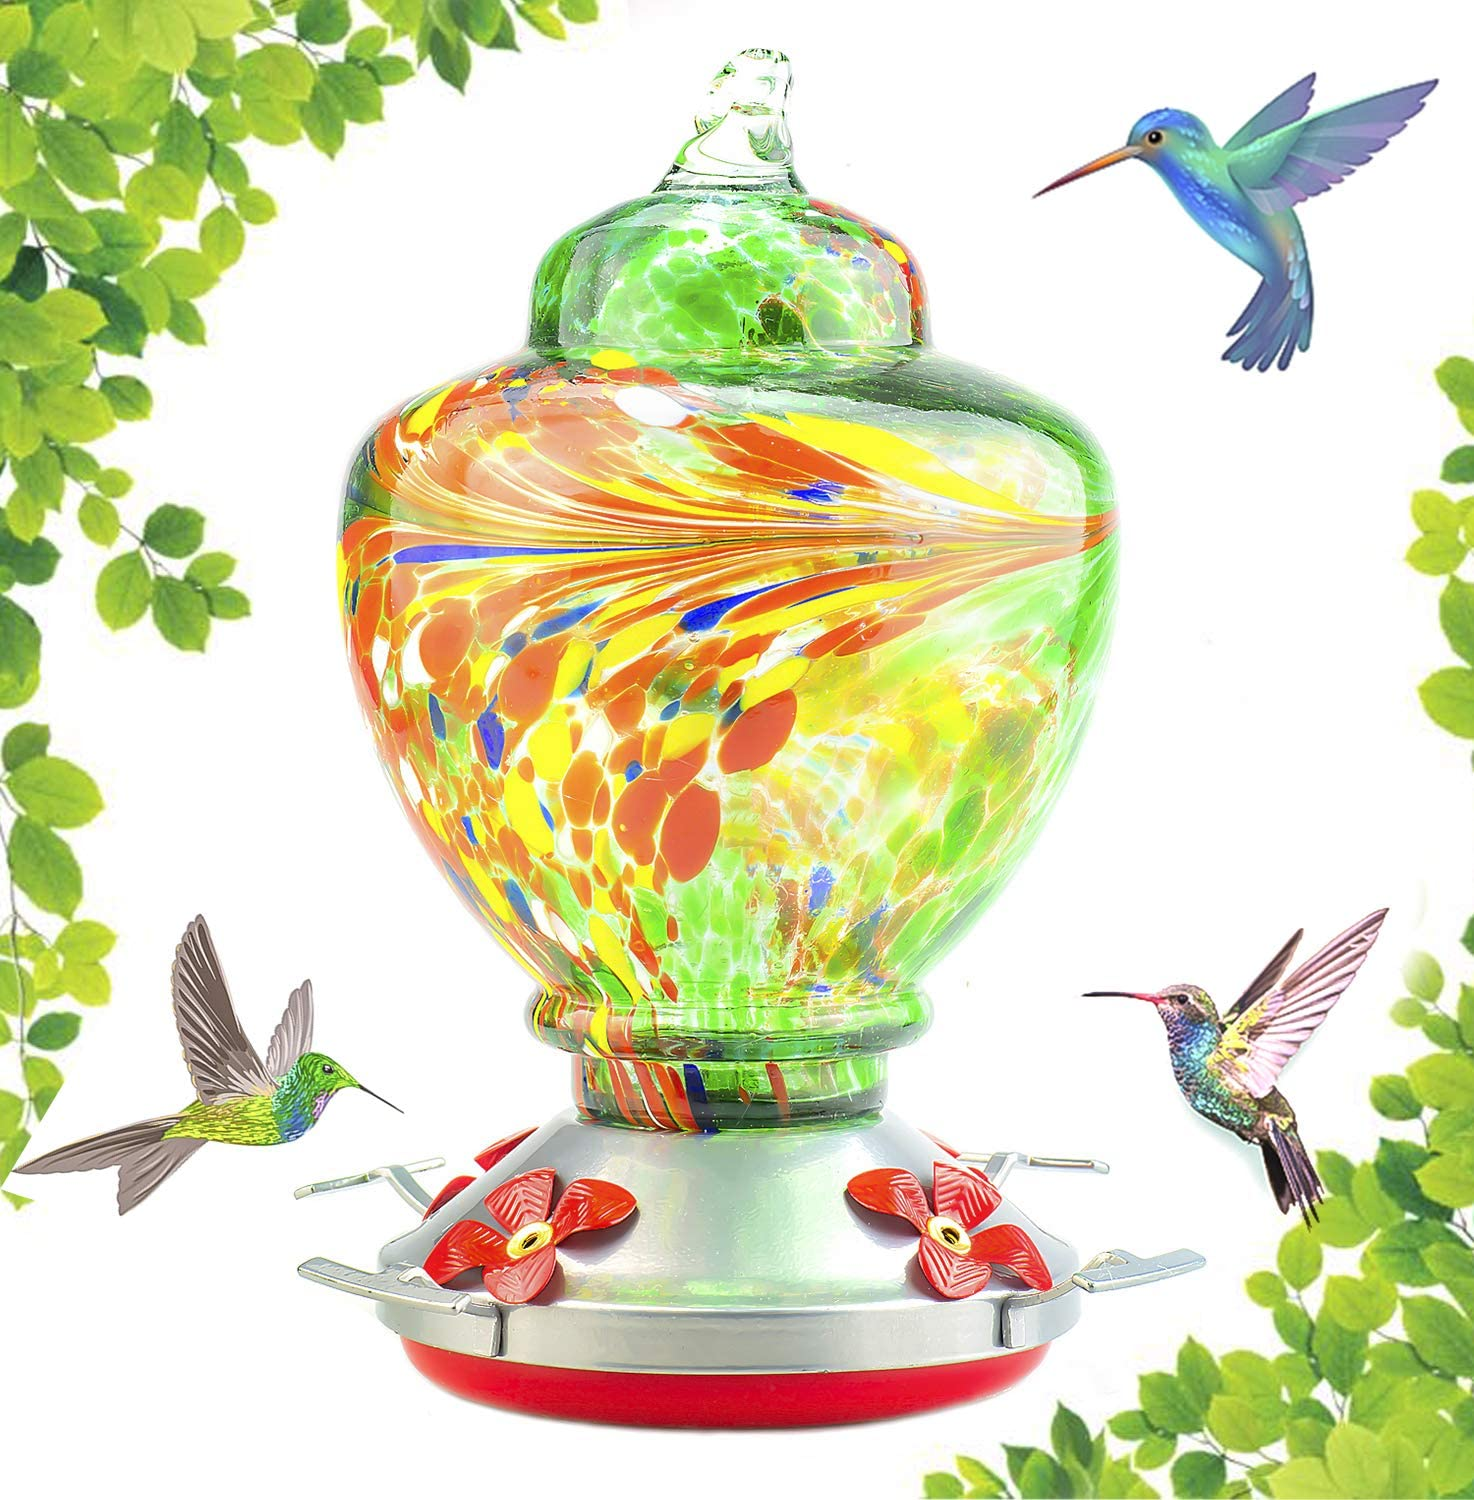 Hummingbird Feeder with Perch - Hand Blown Glass - Green - 38 Fluid Ounces Hummingbird Nectar Capacity Include Hanging Wires and Moat Hook